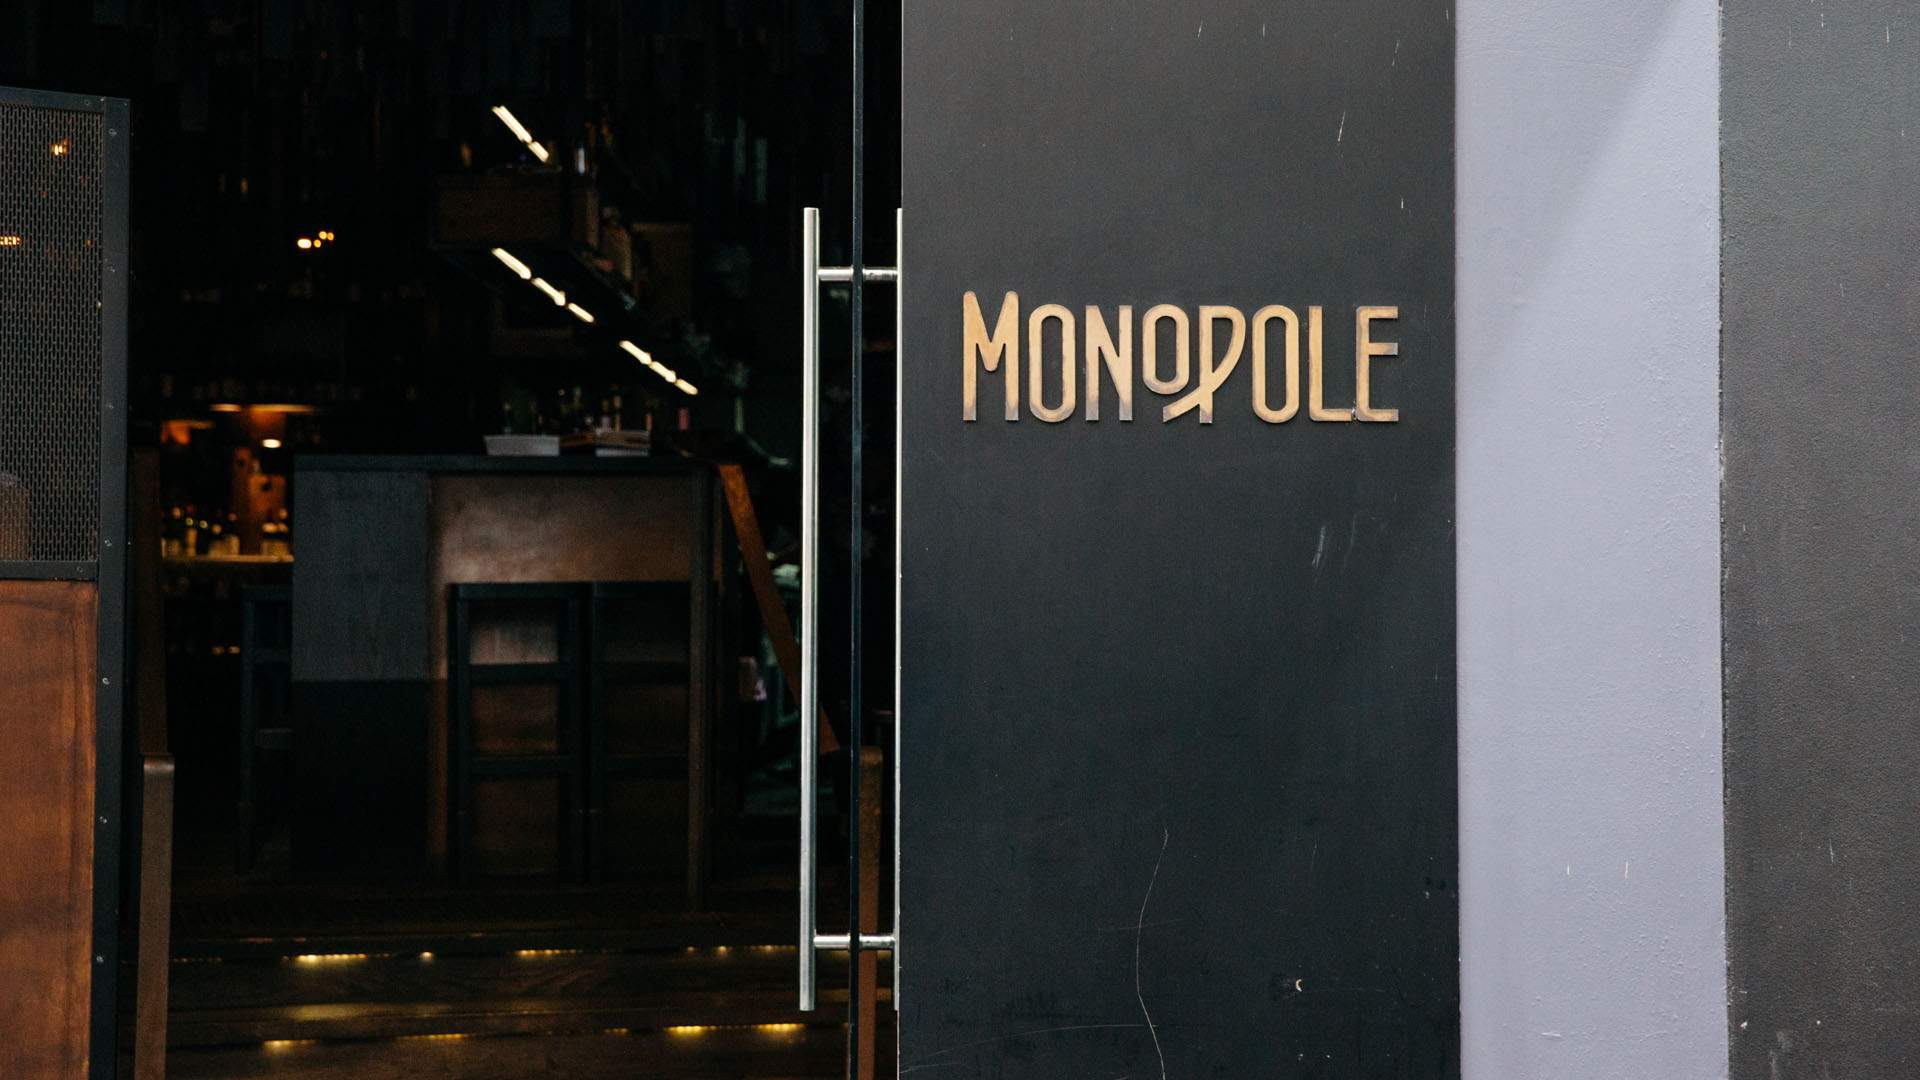 Sydney's Award-Winning Wine Bar Monopole Is Relocating to the CBD This October